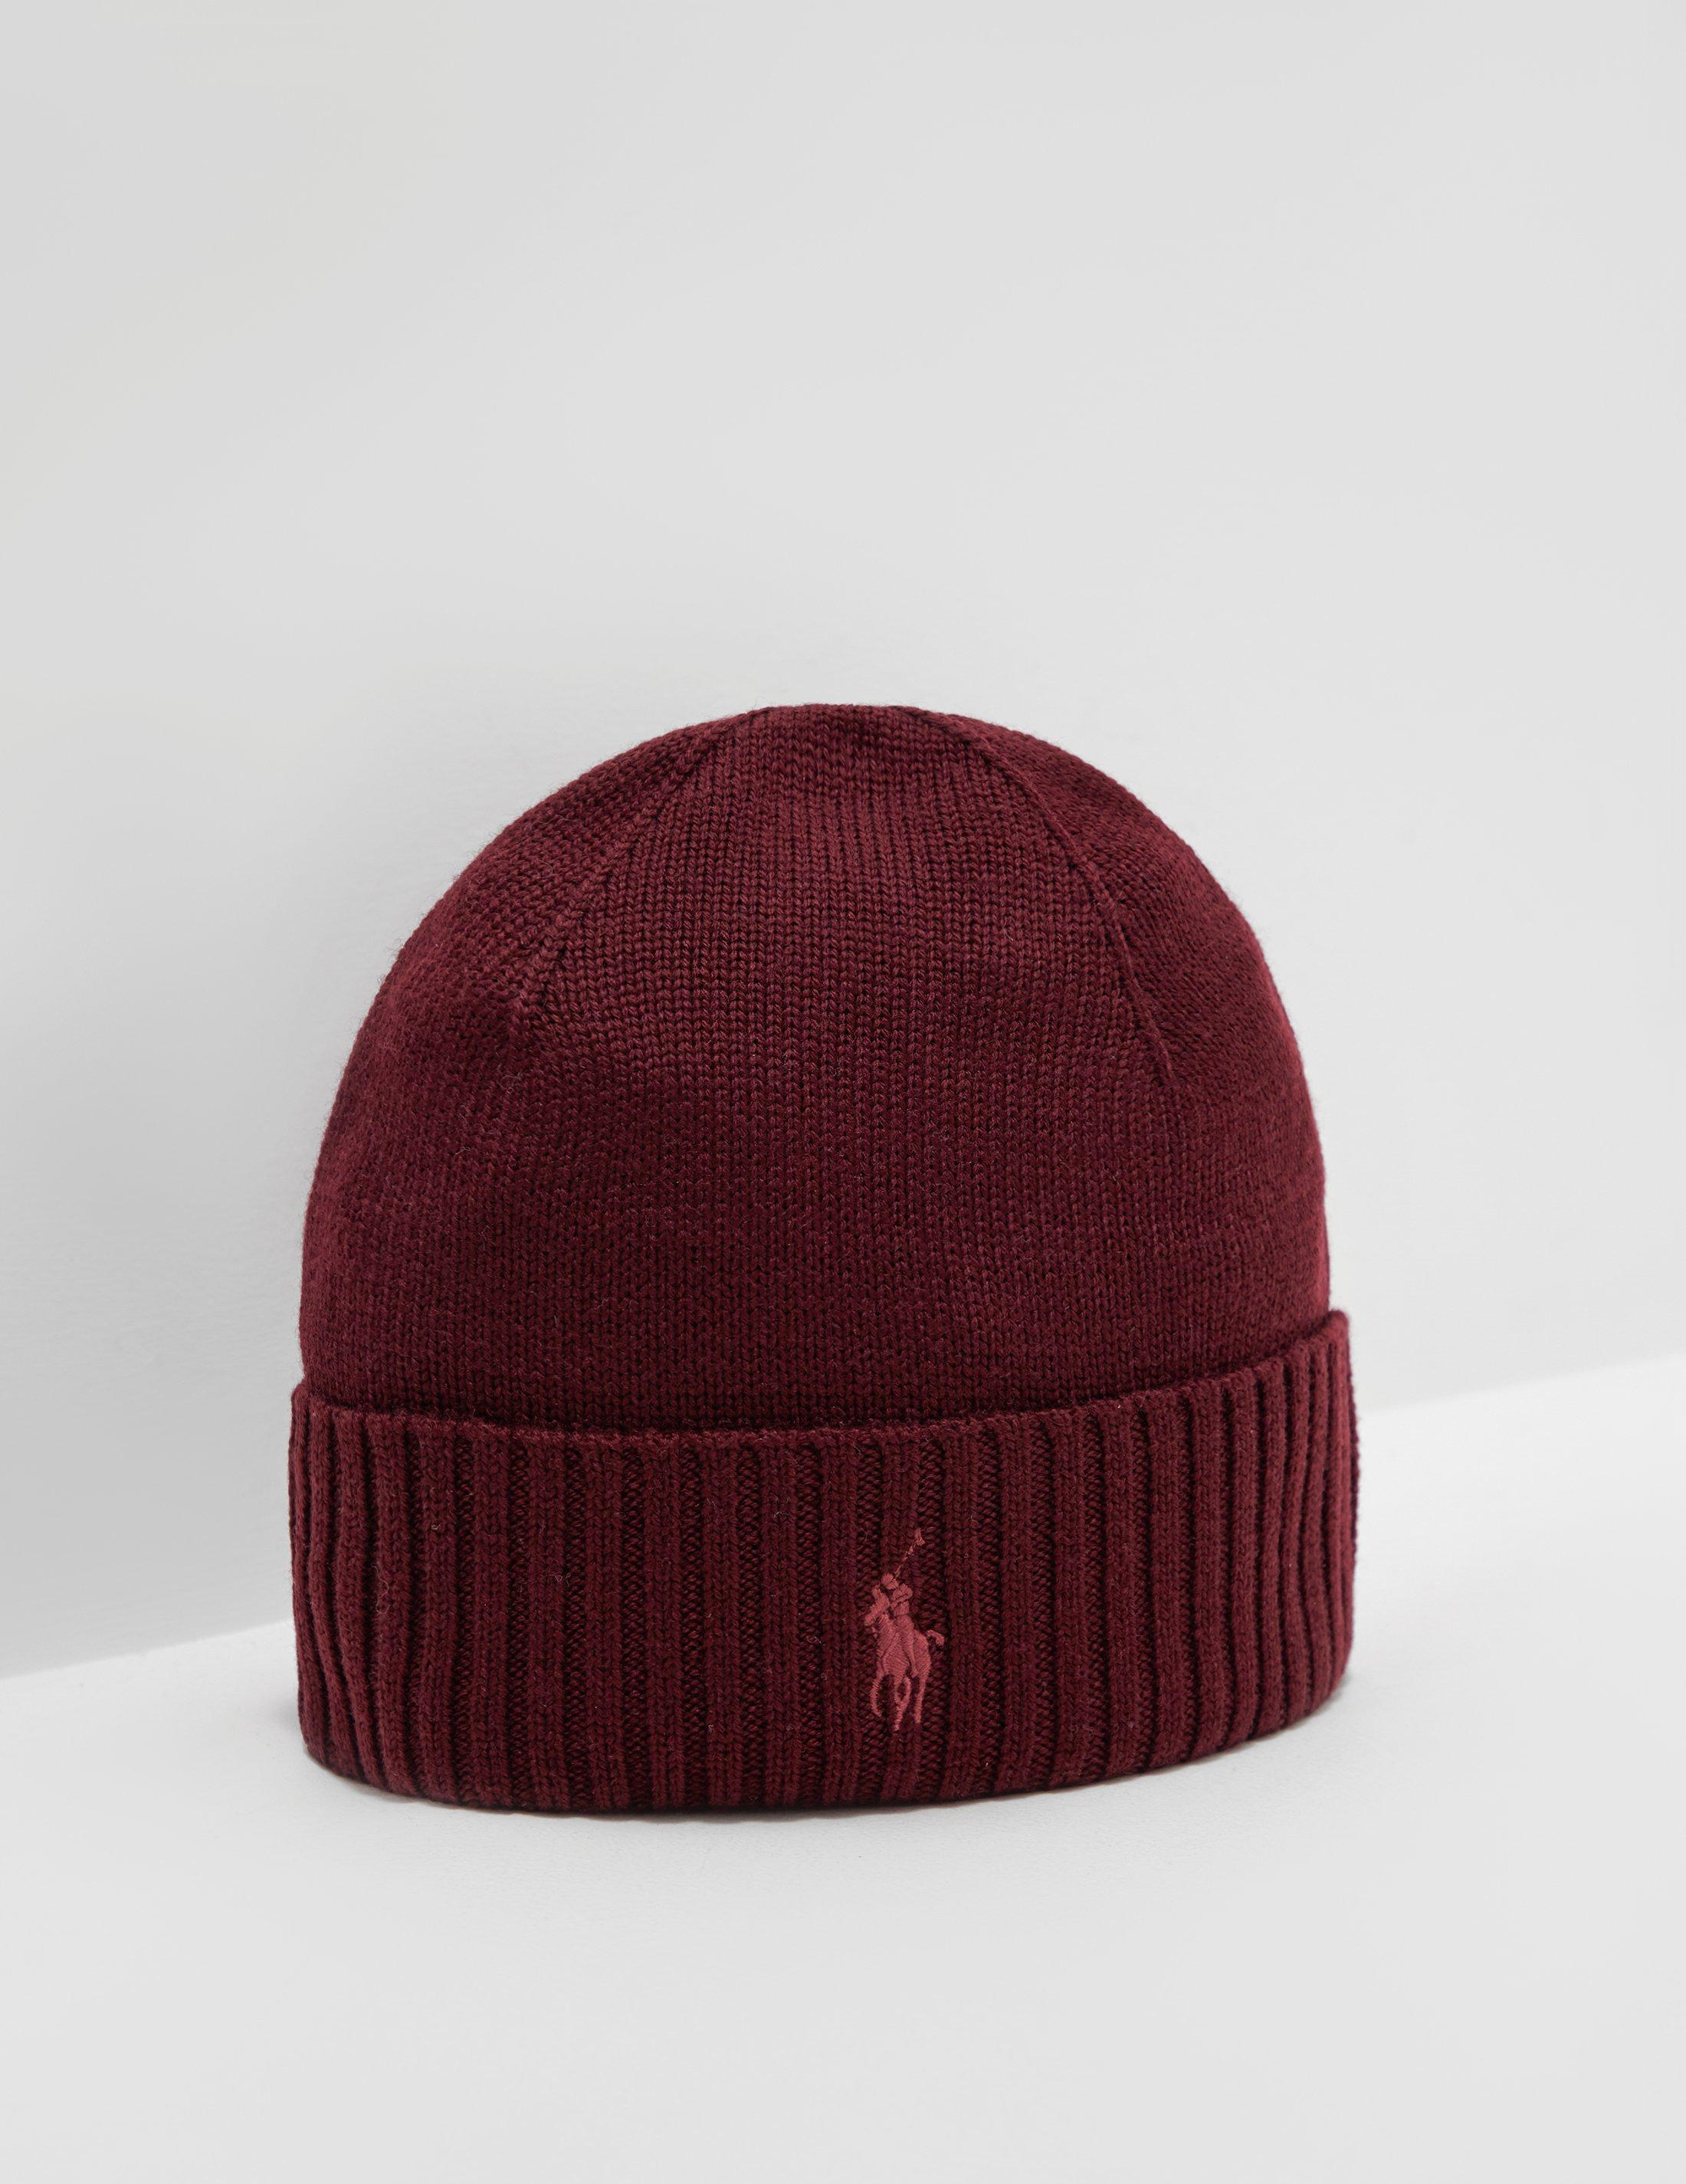 Polo Ralph Lauren Mens Logo Beanie Red in Red for Men - Lyst a3688ee37cc